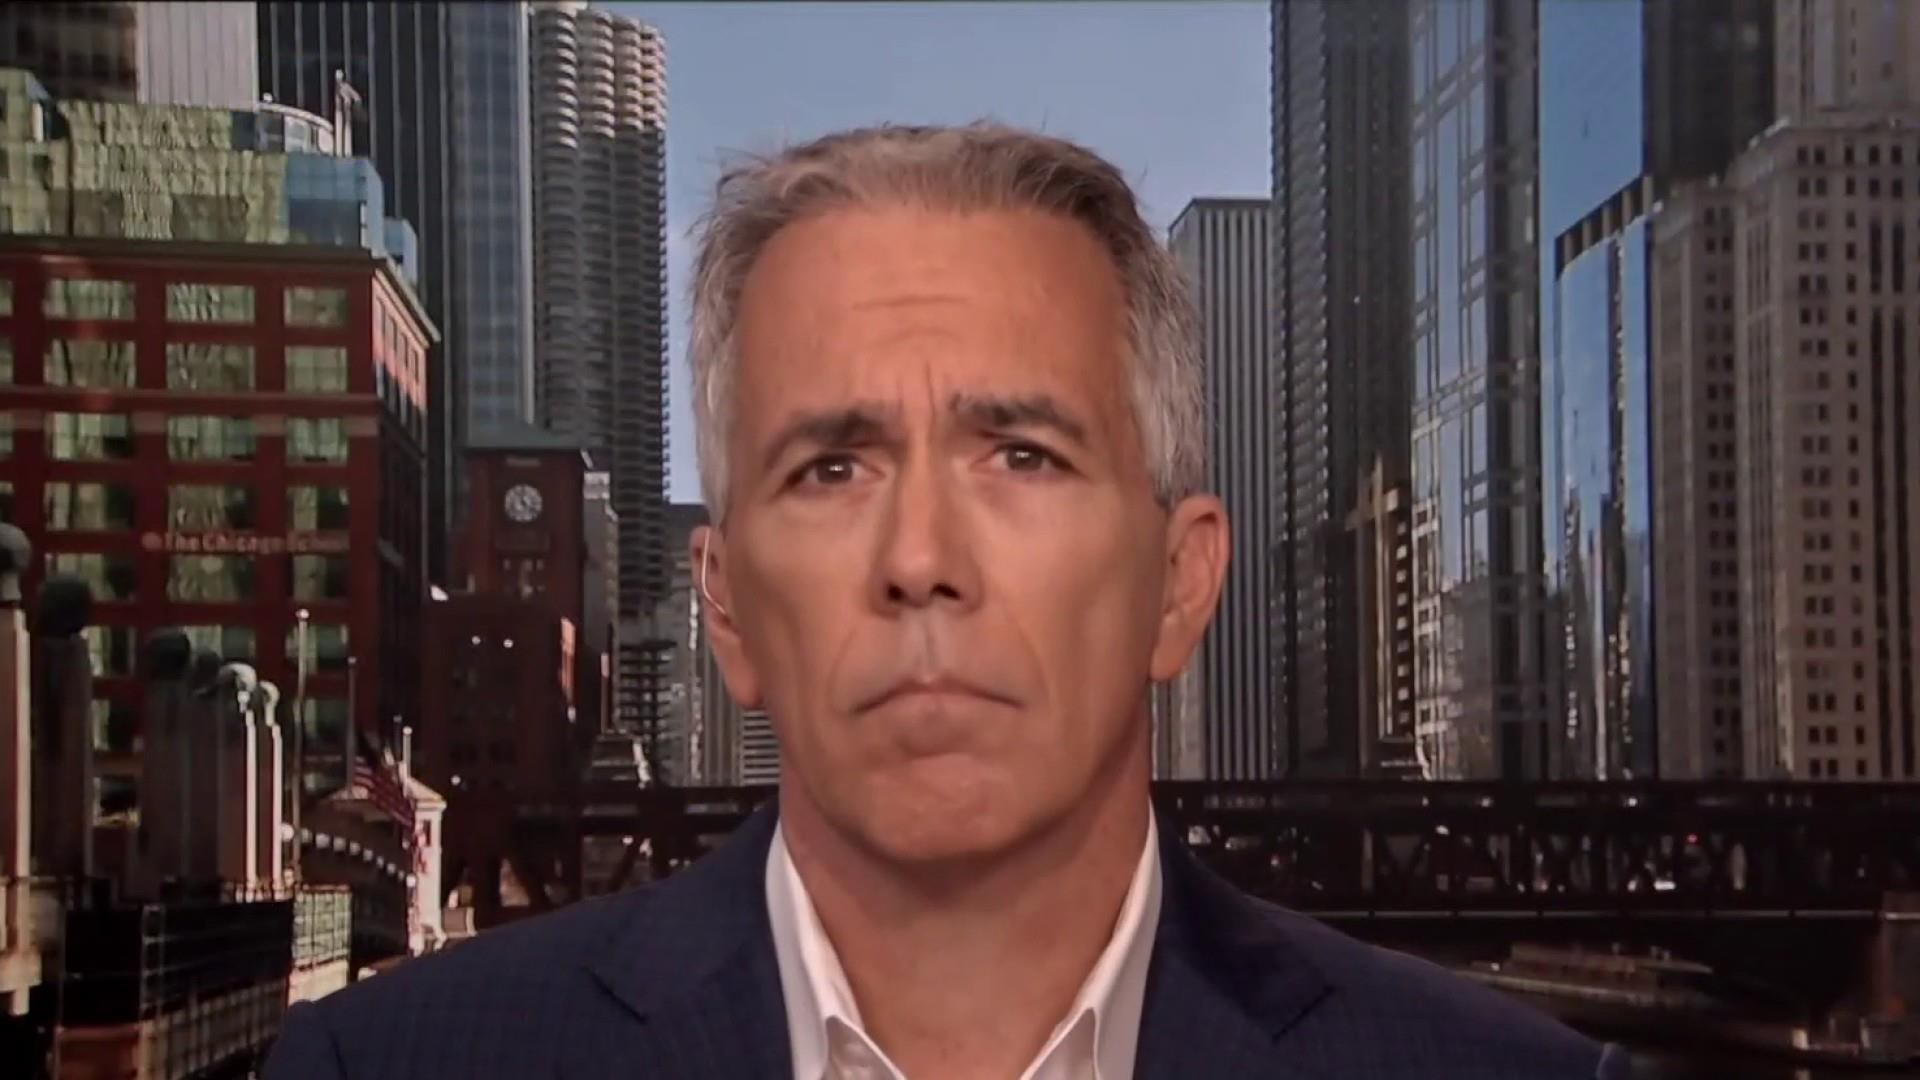 Joe Walsh: Trump is 'the most disloyal president we've ever had'